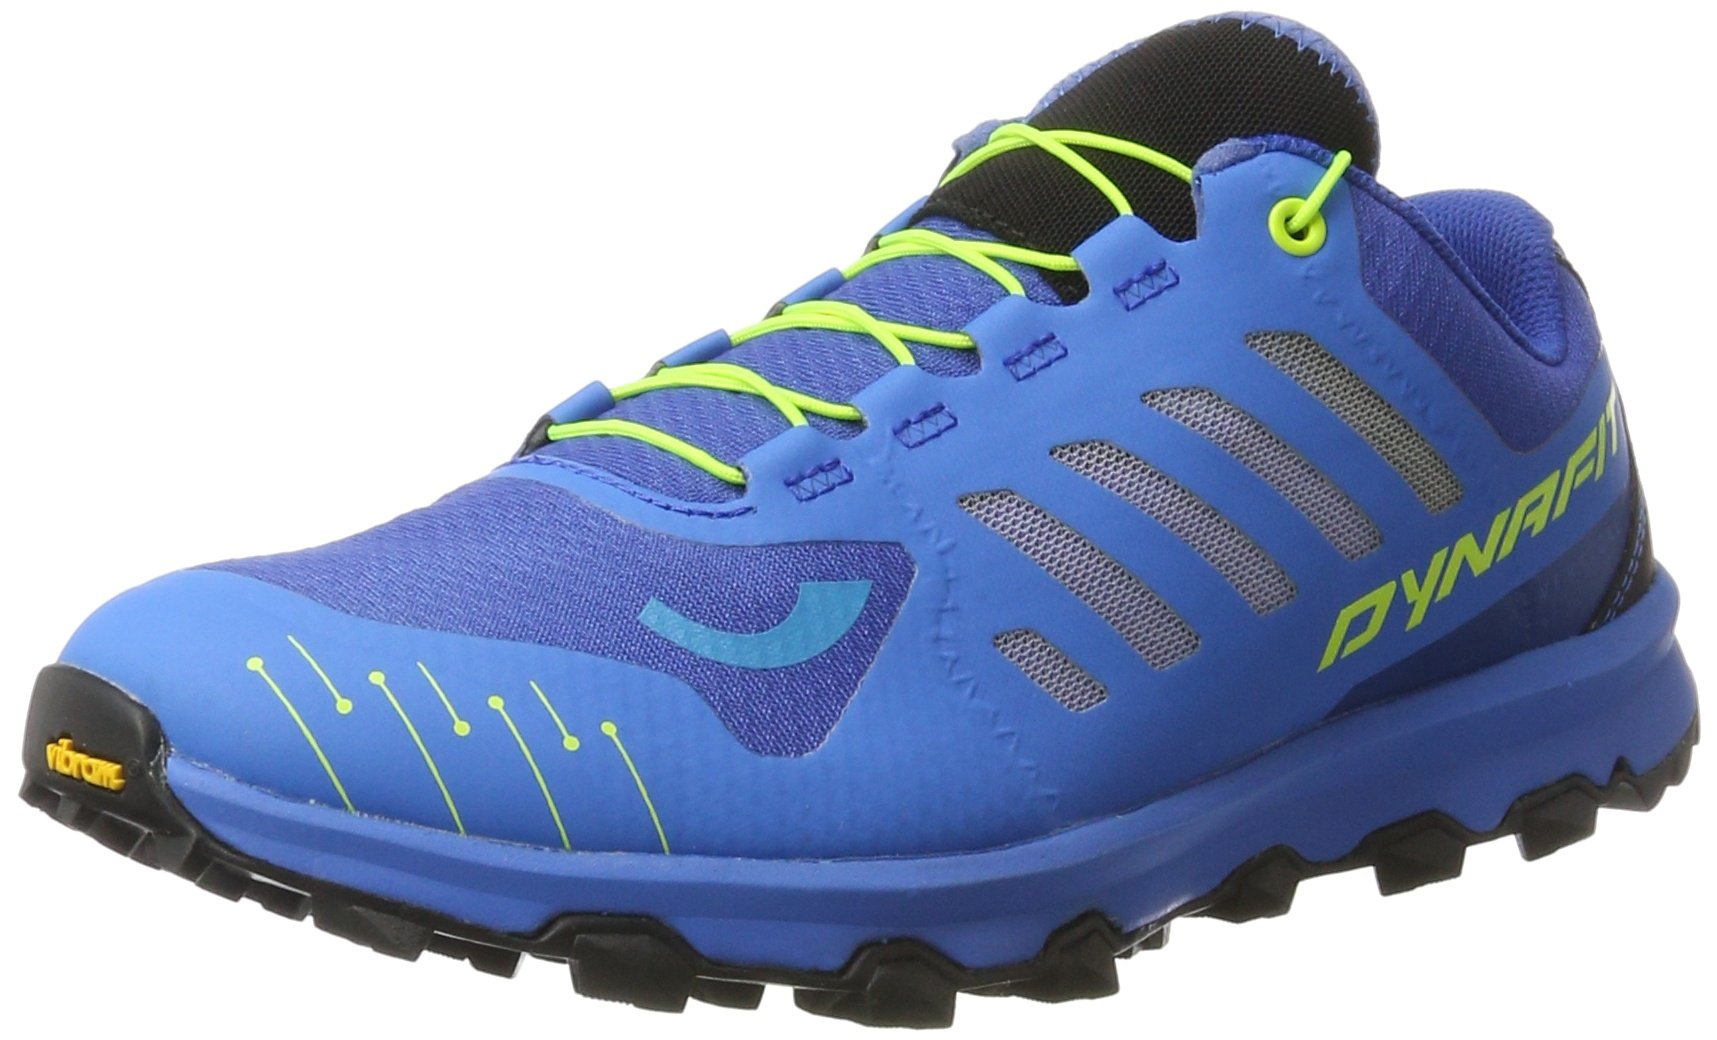 Dynafit Feline Vertical Trail Running Shoe - Men's-Sparta Blue/Fluo